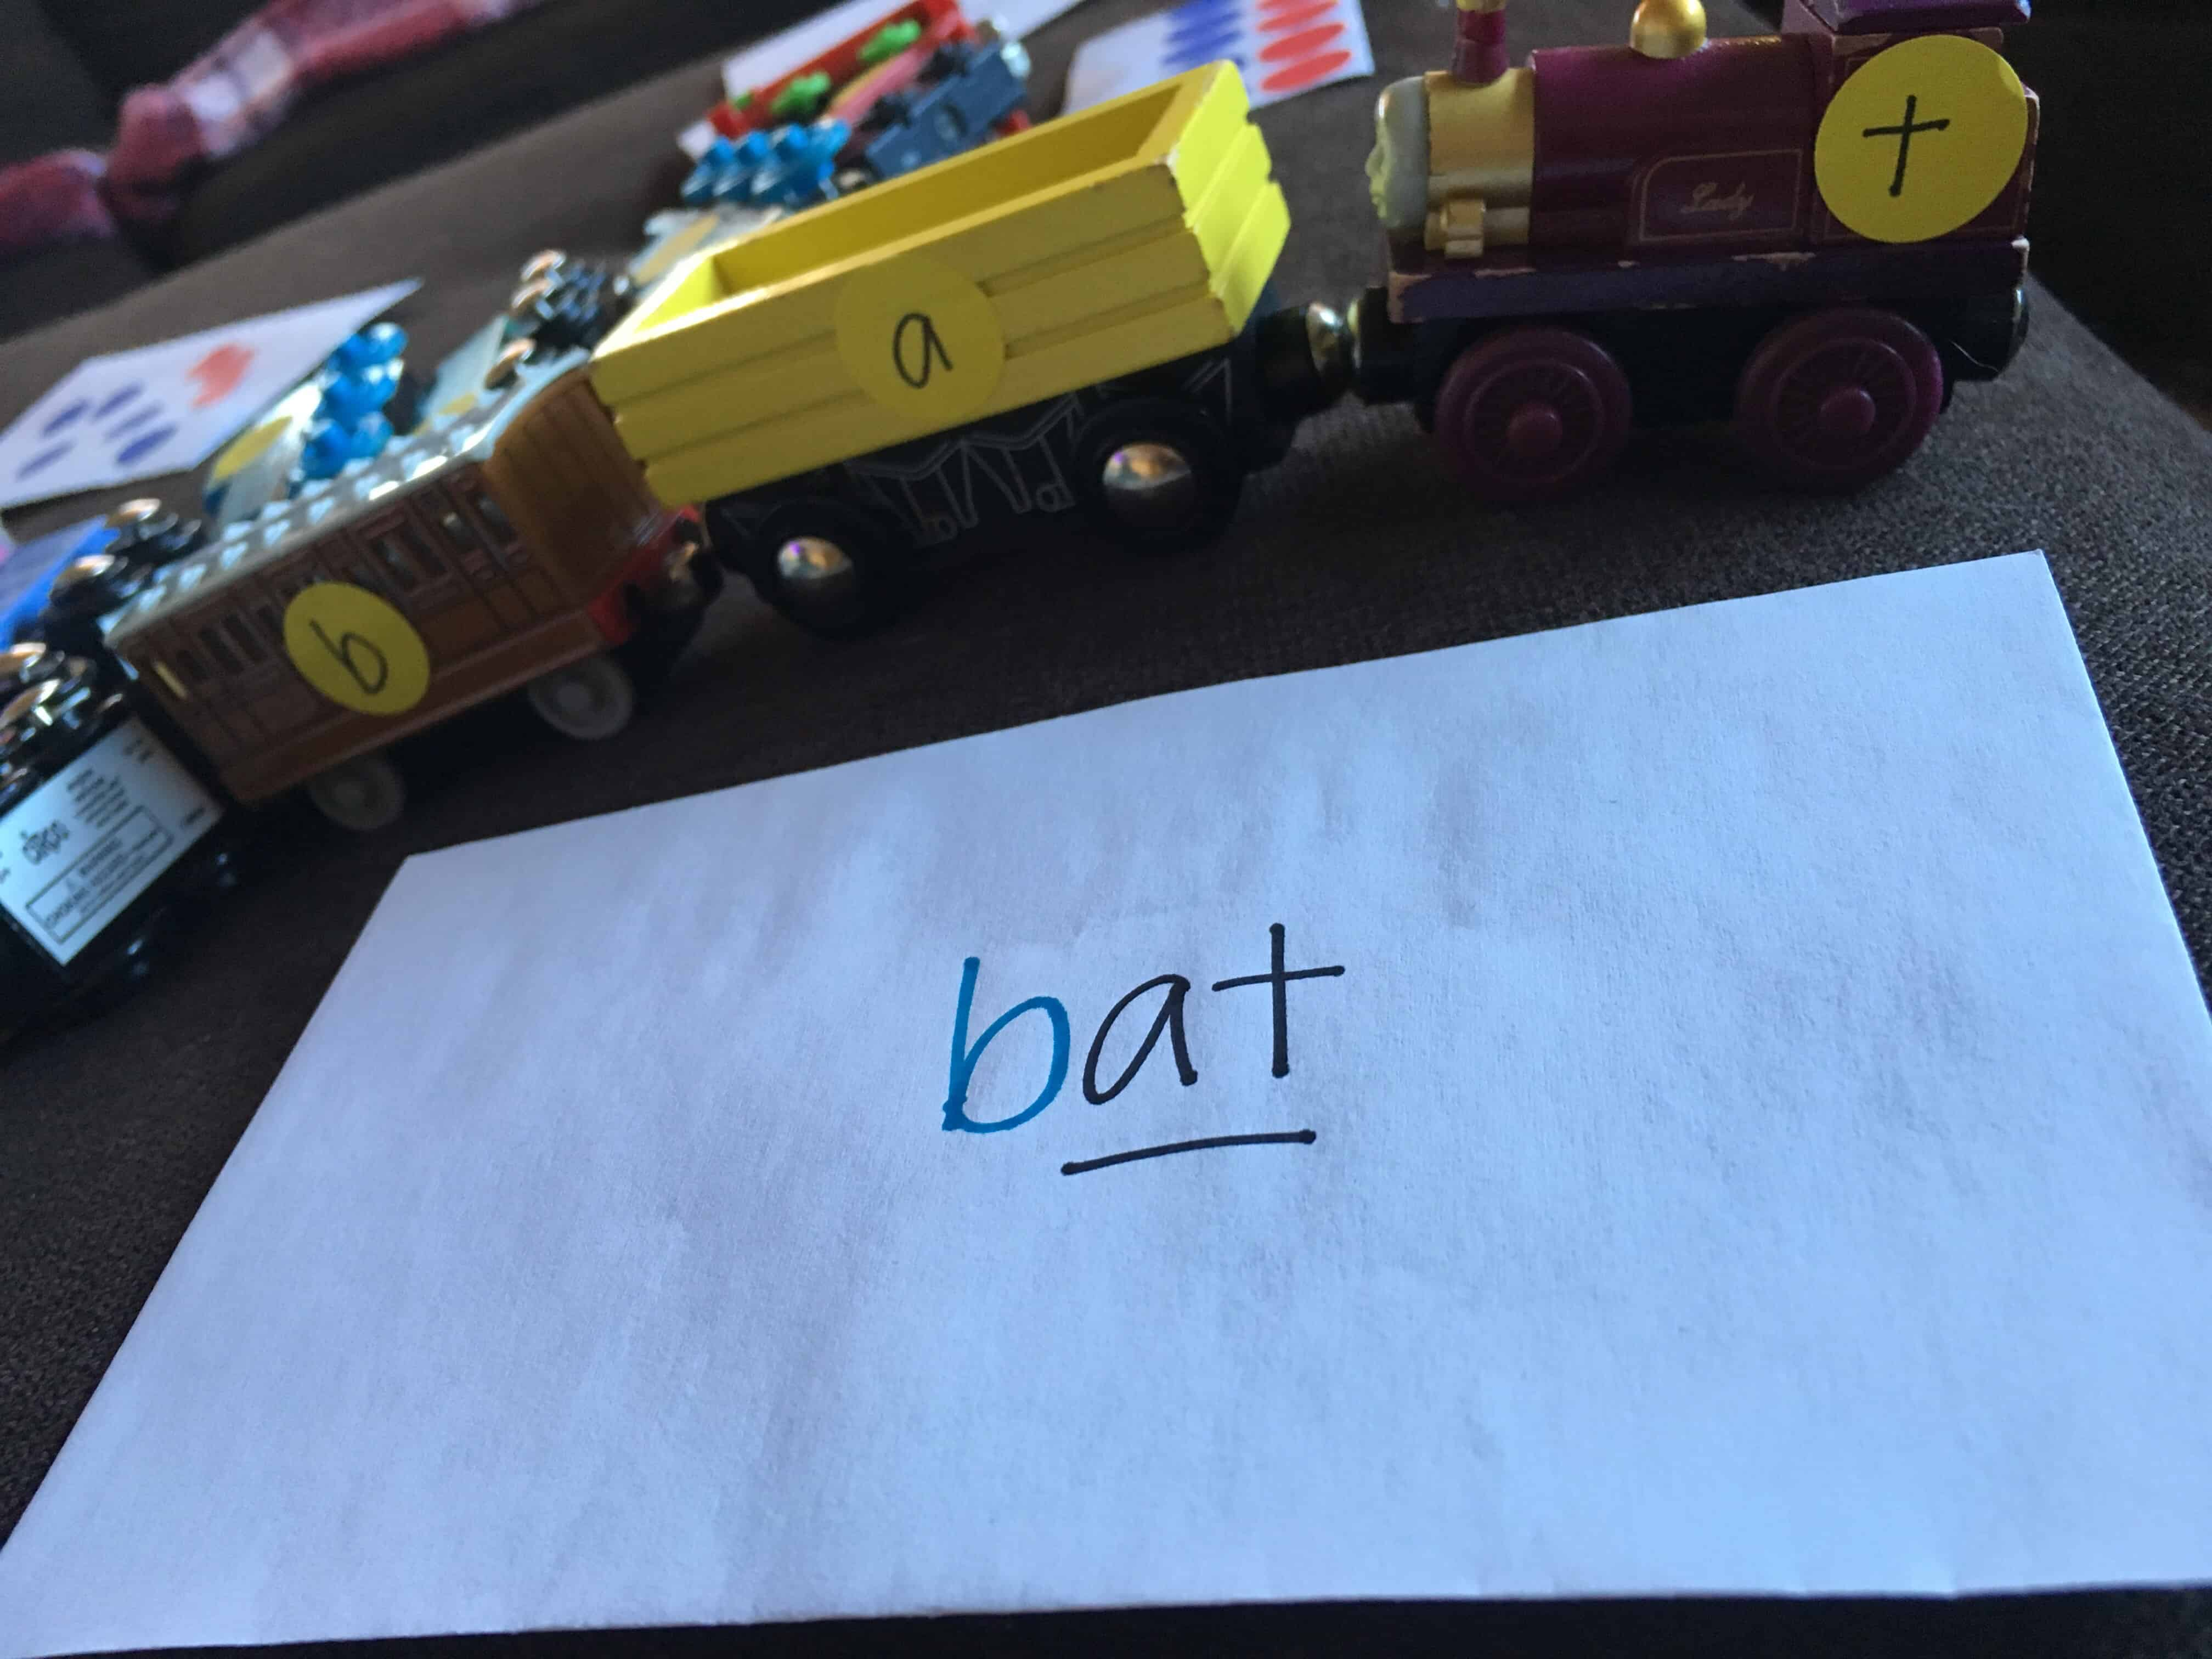 Learn to spell by making literacy fun through play! Use stickers on toy trains to create sight words.